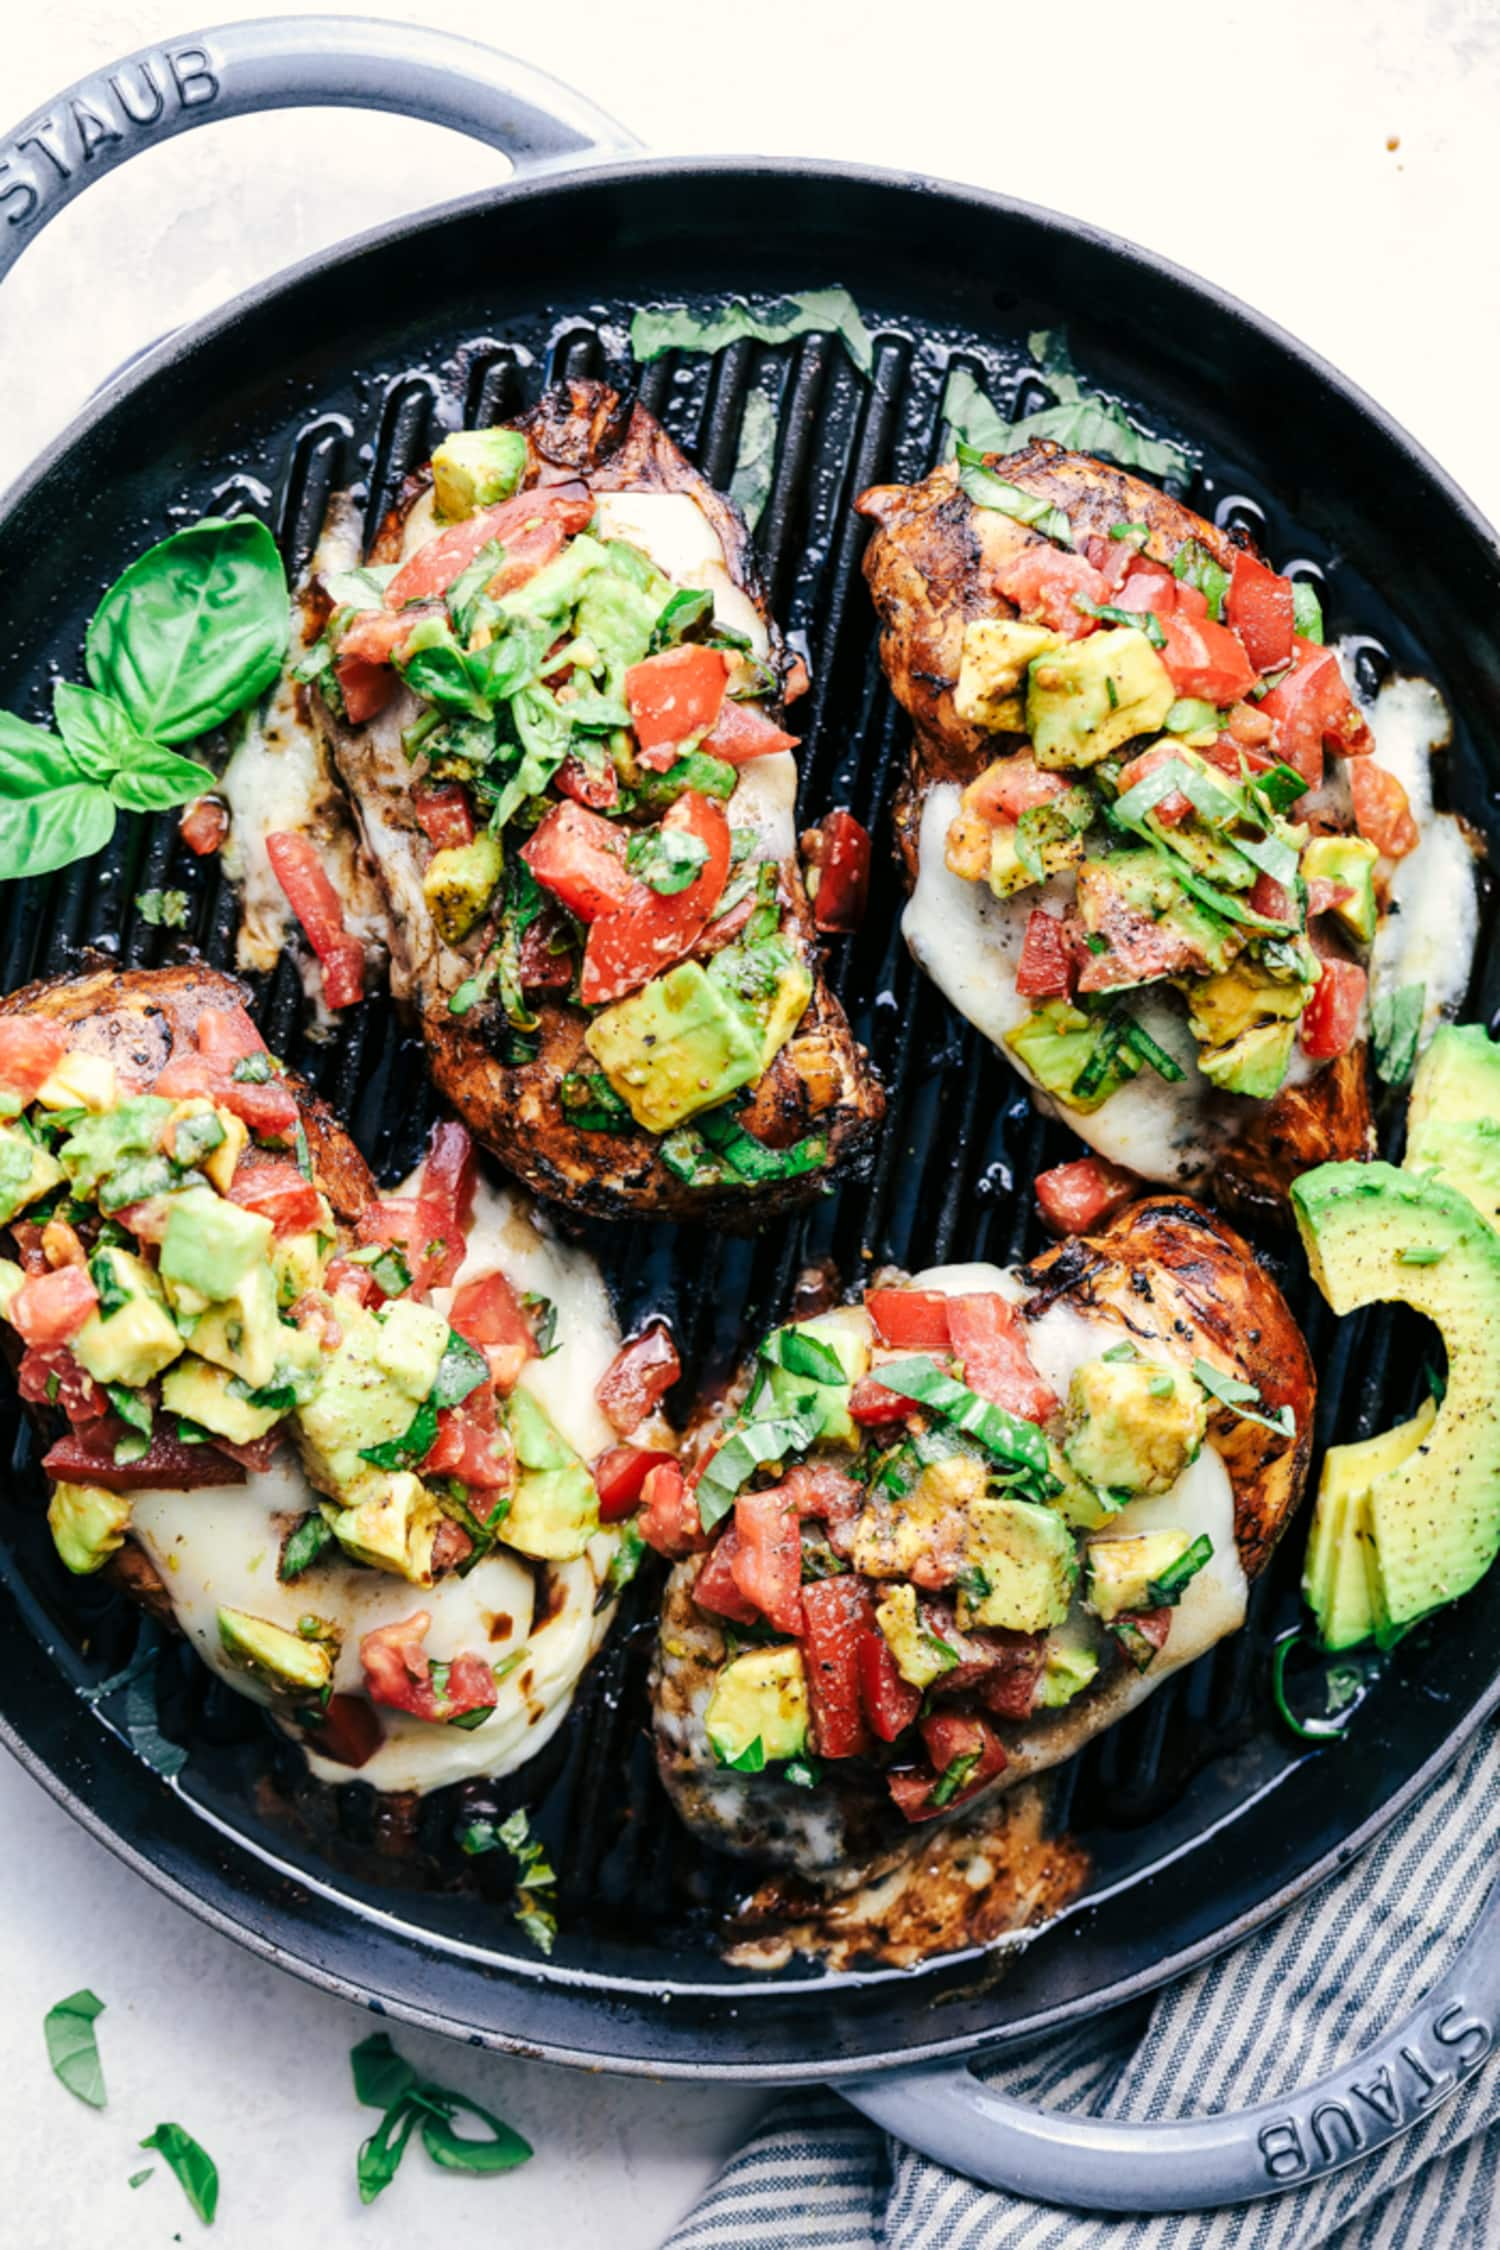 Make This Easy Grilled Chicken with Avocado for Dinner